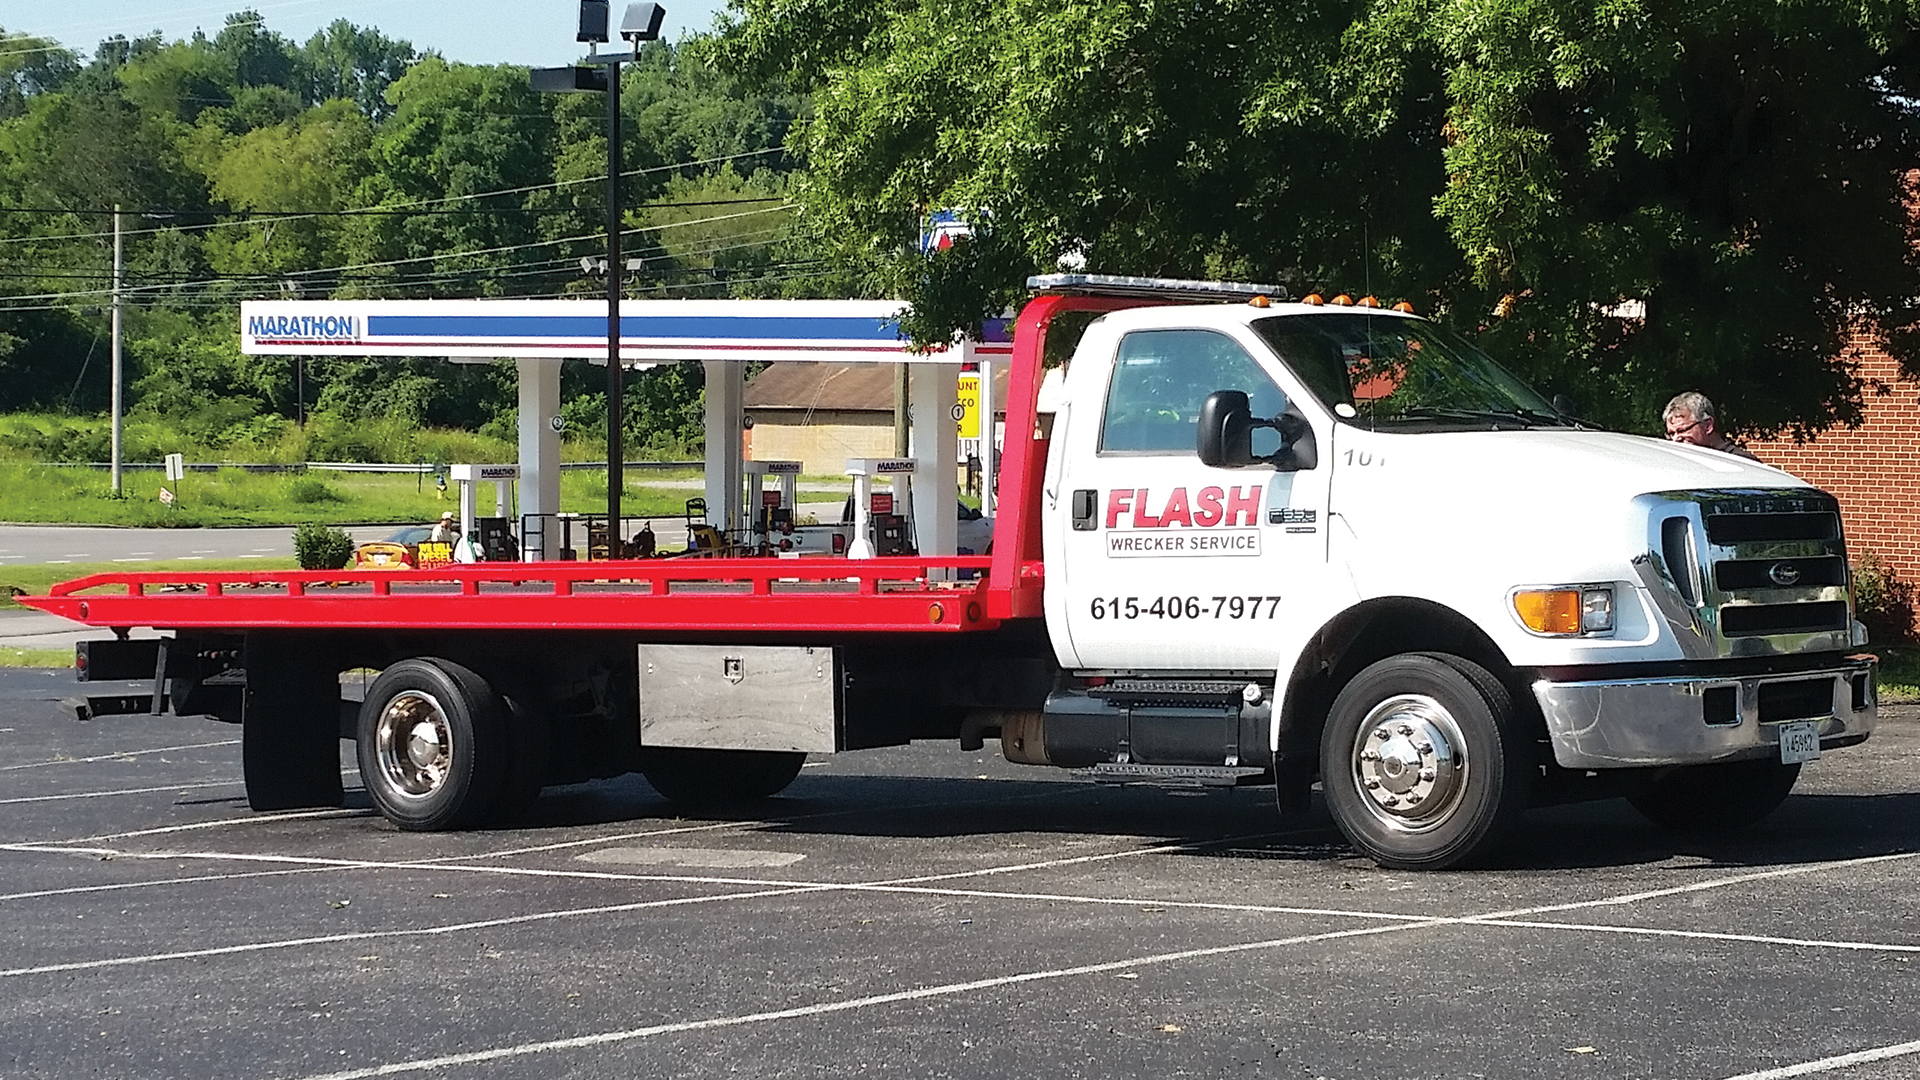 Flash Wrecker Service - Towing Service l Winch Outs l Garage Towing